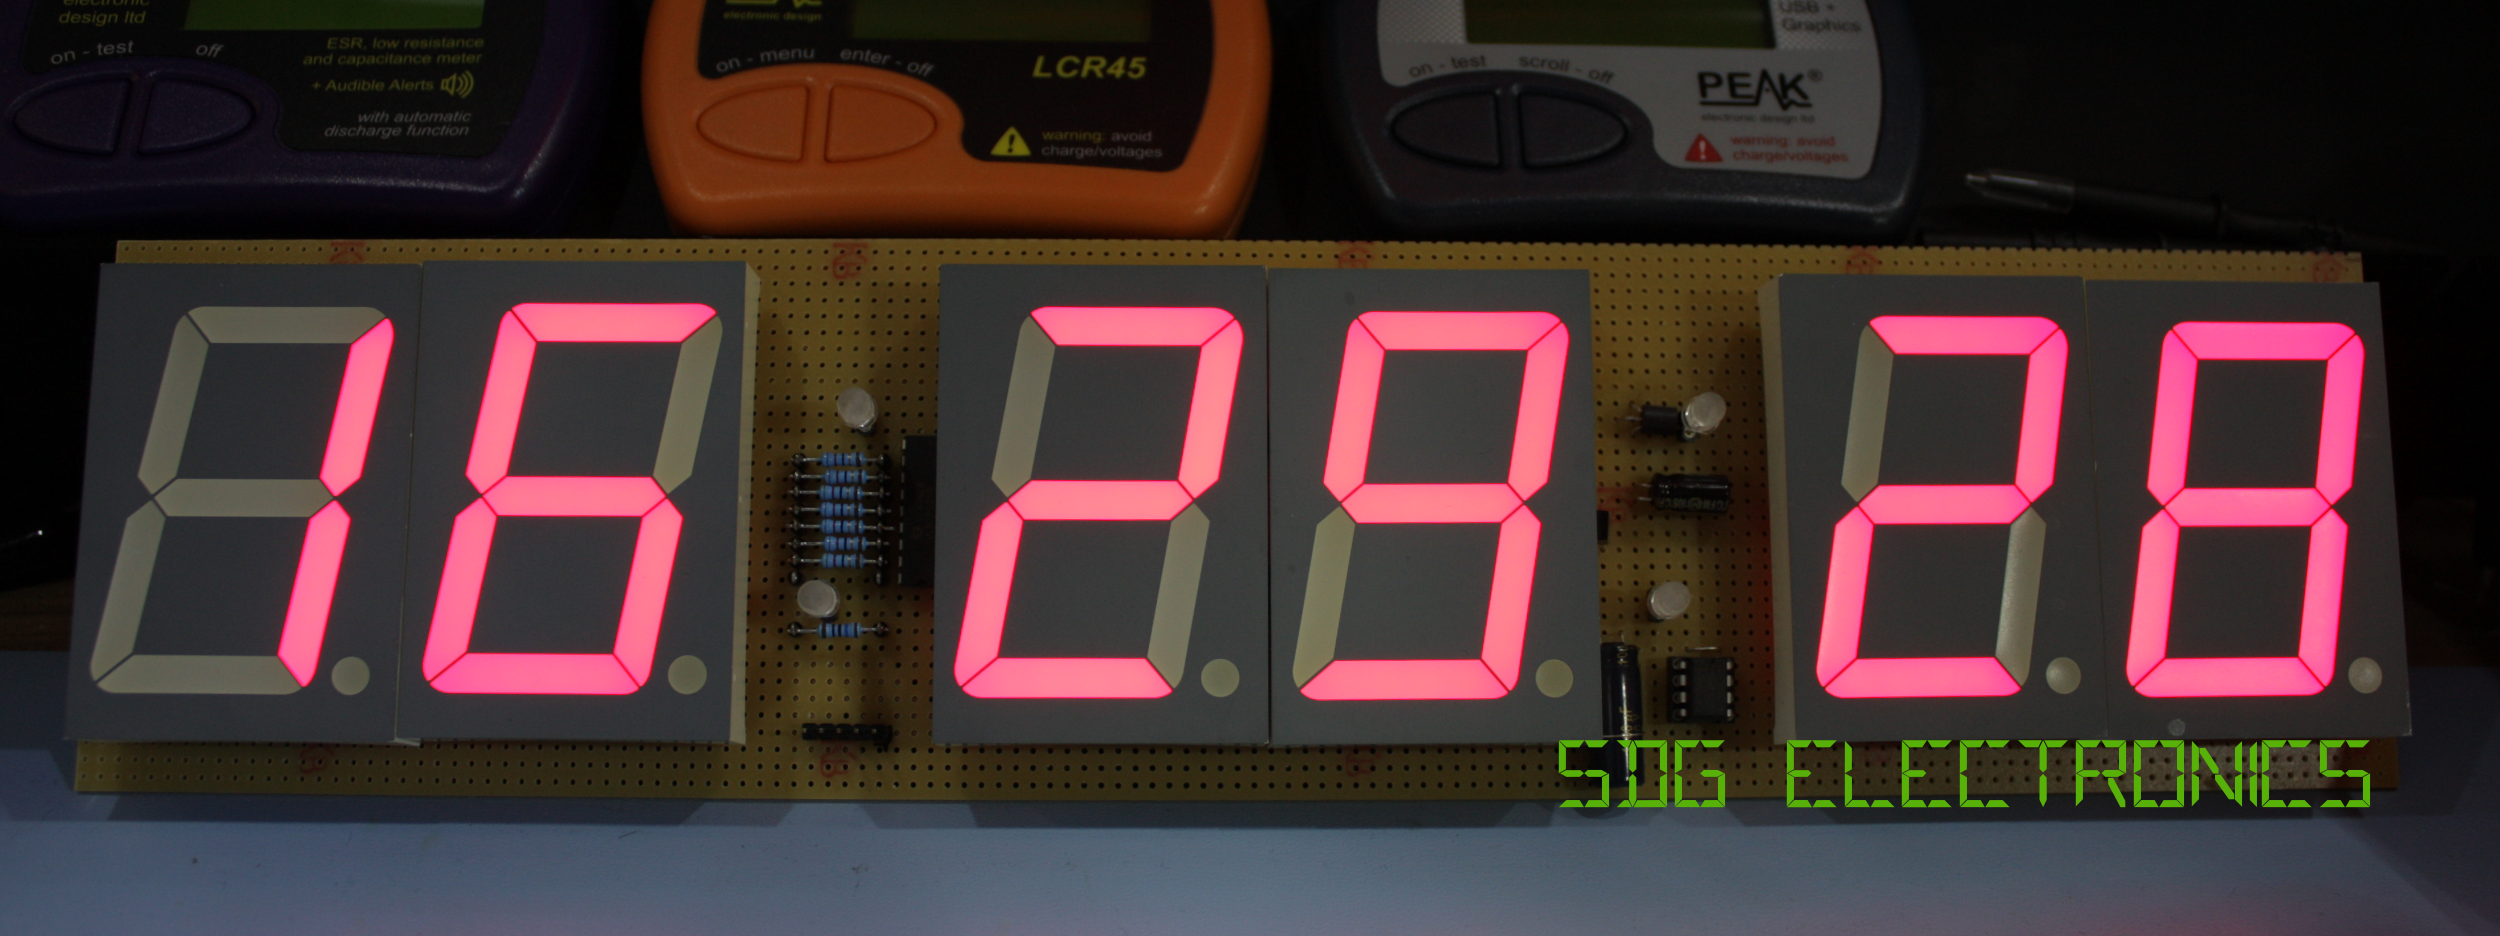 6 Digit Led Clock Sdg Electronics Display Board Circuit